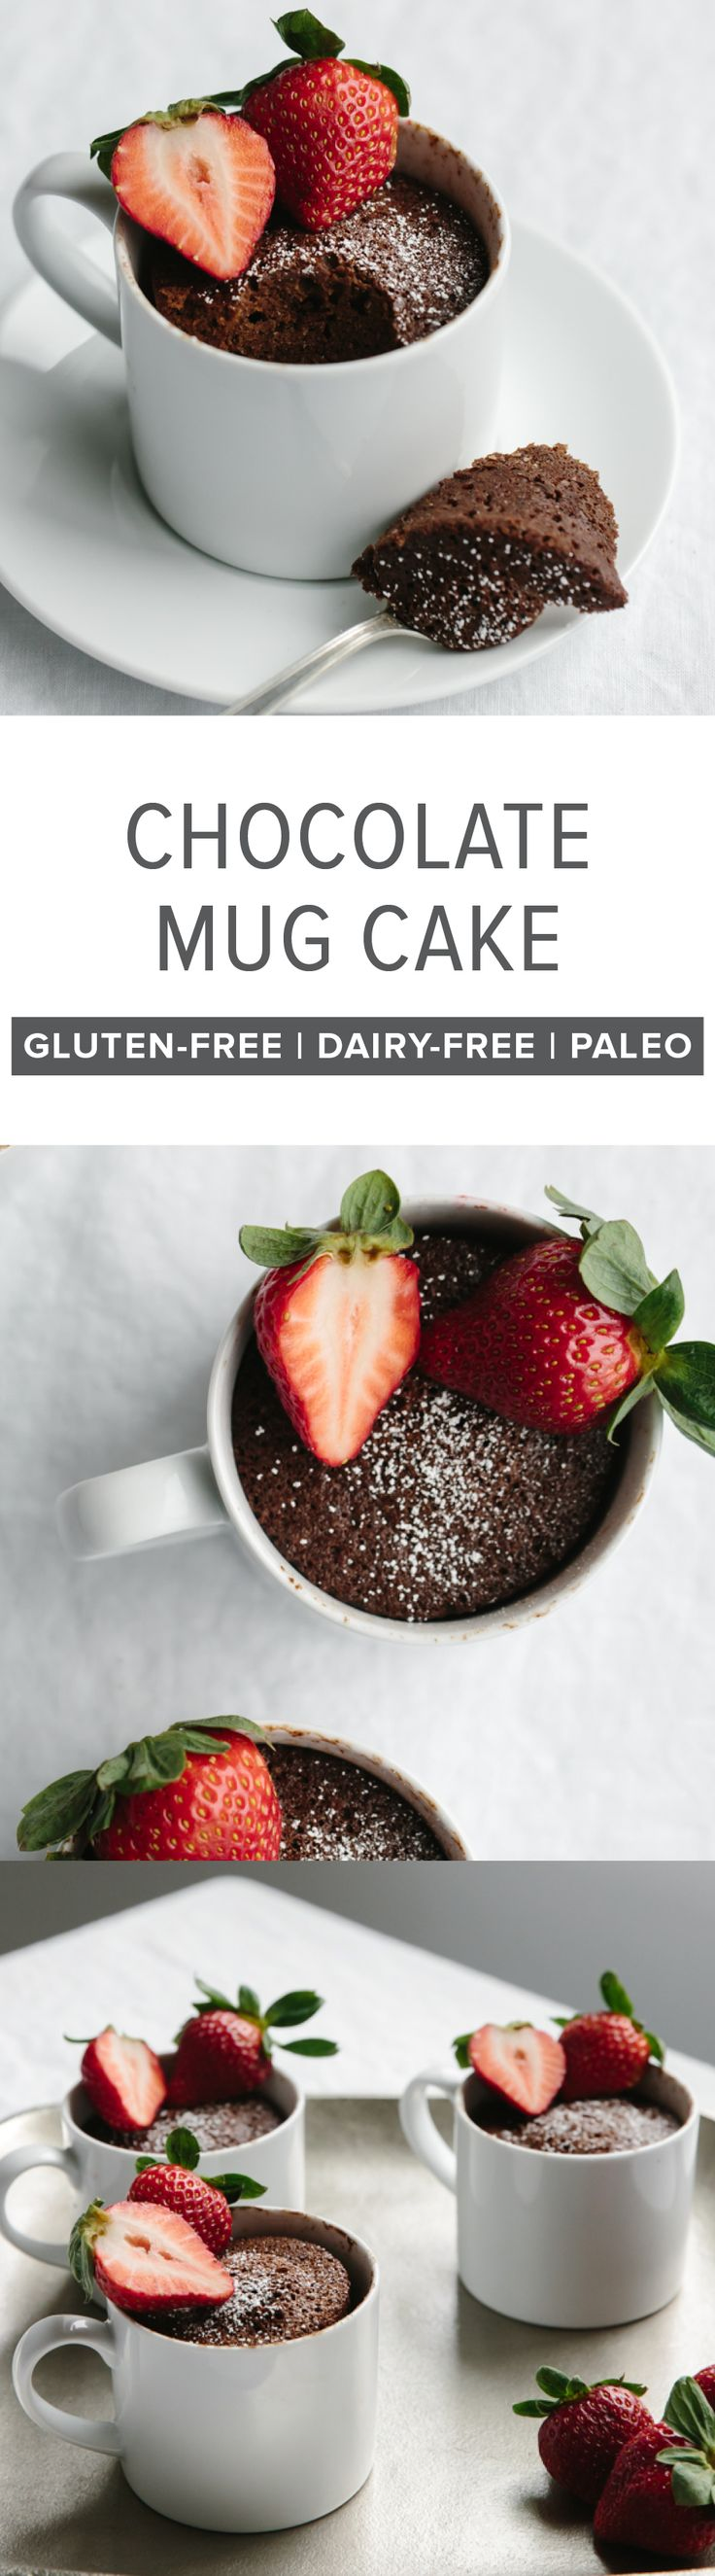 (gluten-free, paleo) A delicious, healthy and moist chocolate mug cake that can be made in less than two minutes - super easy! #Chocolate #MugCake #GlutenFree #Paleo #DairyFree #ChocolateMugCake